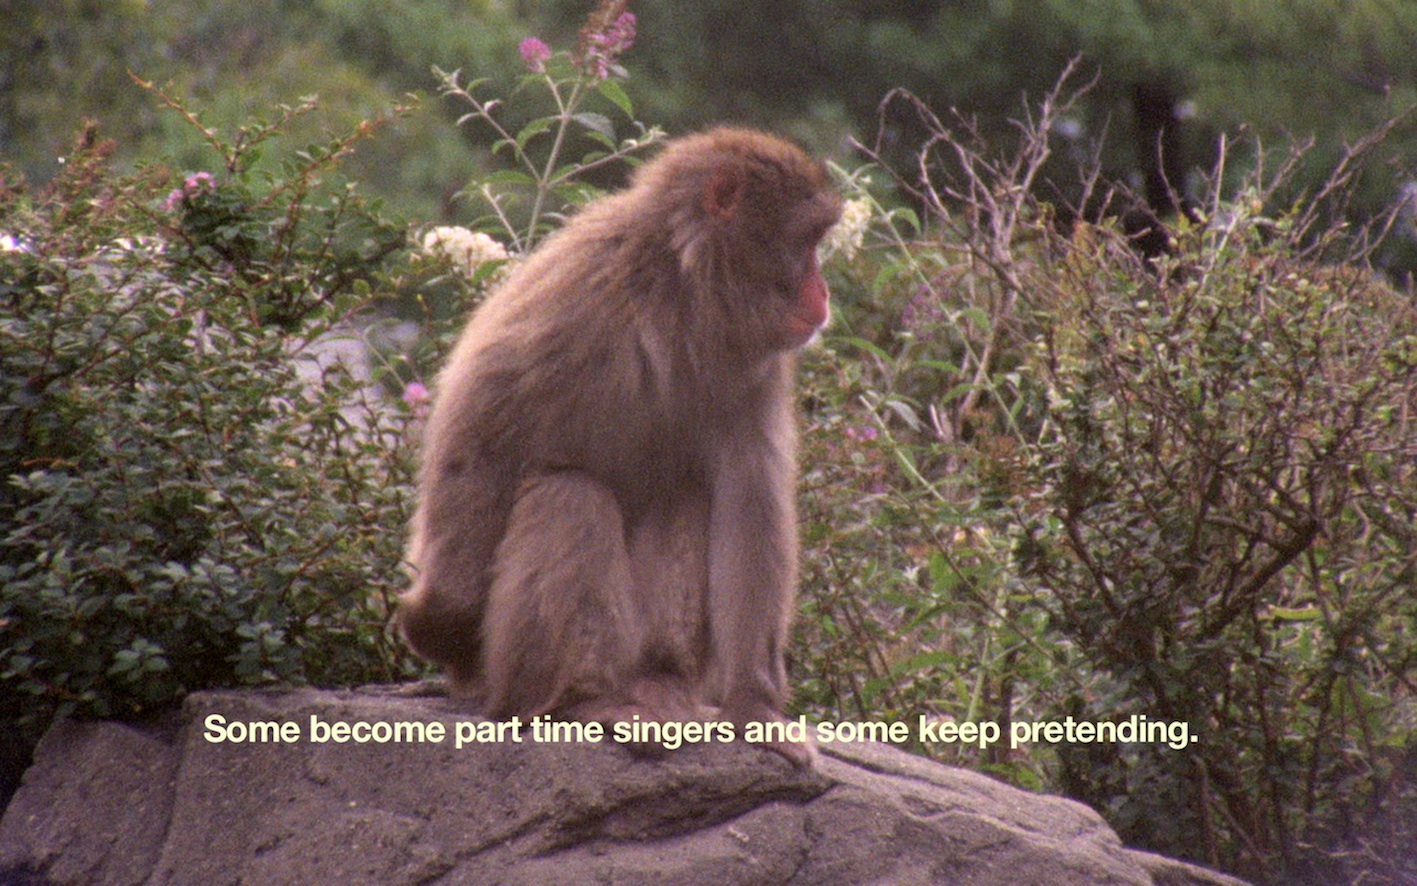 Film still from The Everyday Ritual of Solitude Hatching Monkeys by Basim Magdy. Courtesy of the artist and Gypsum Gallery